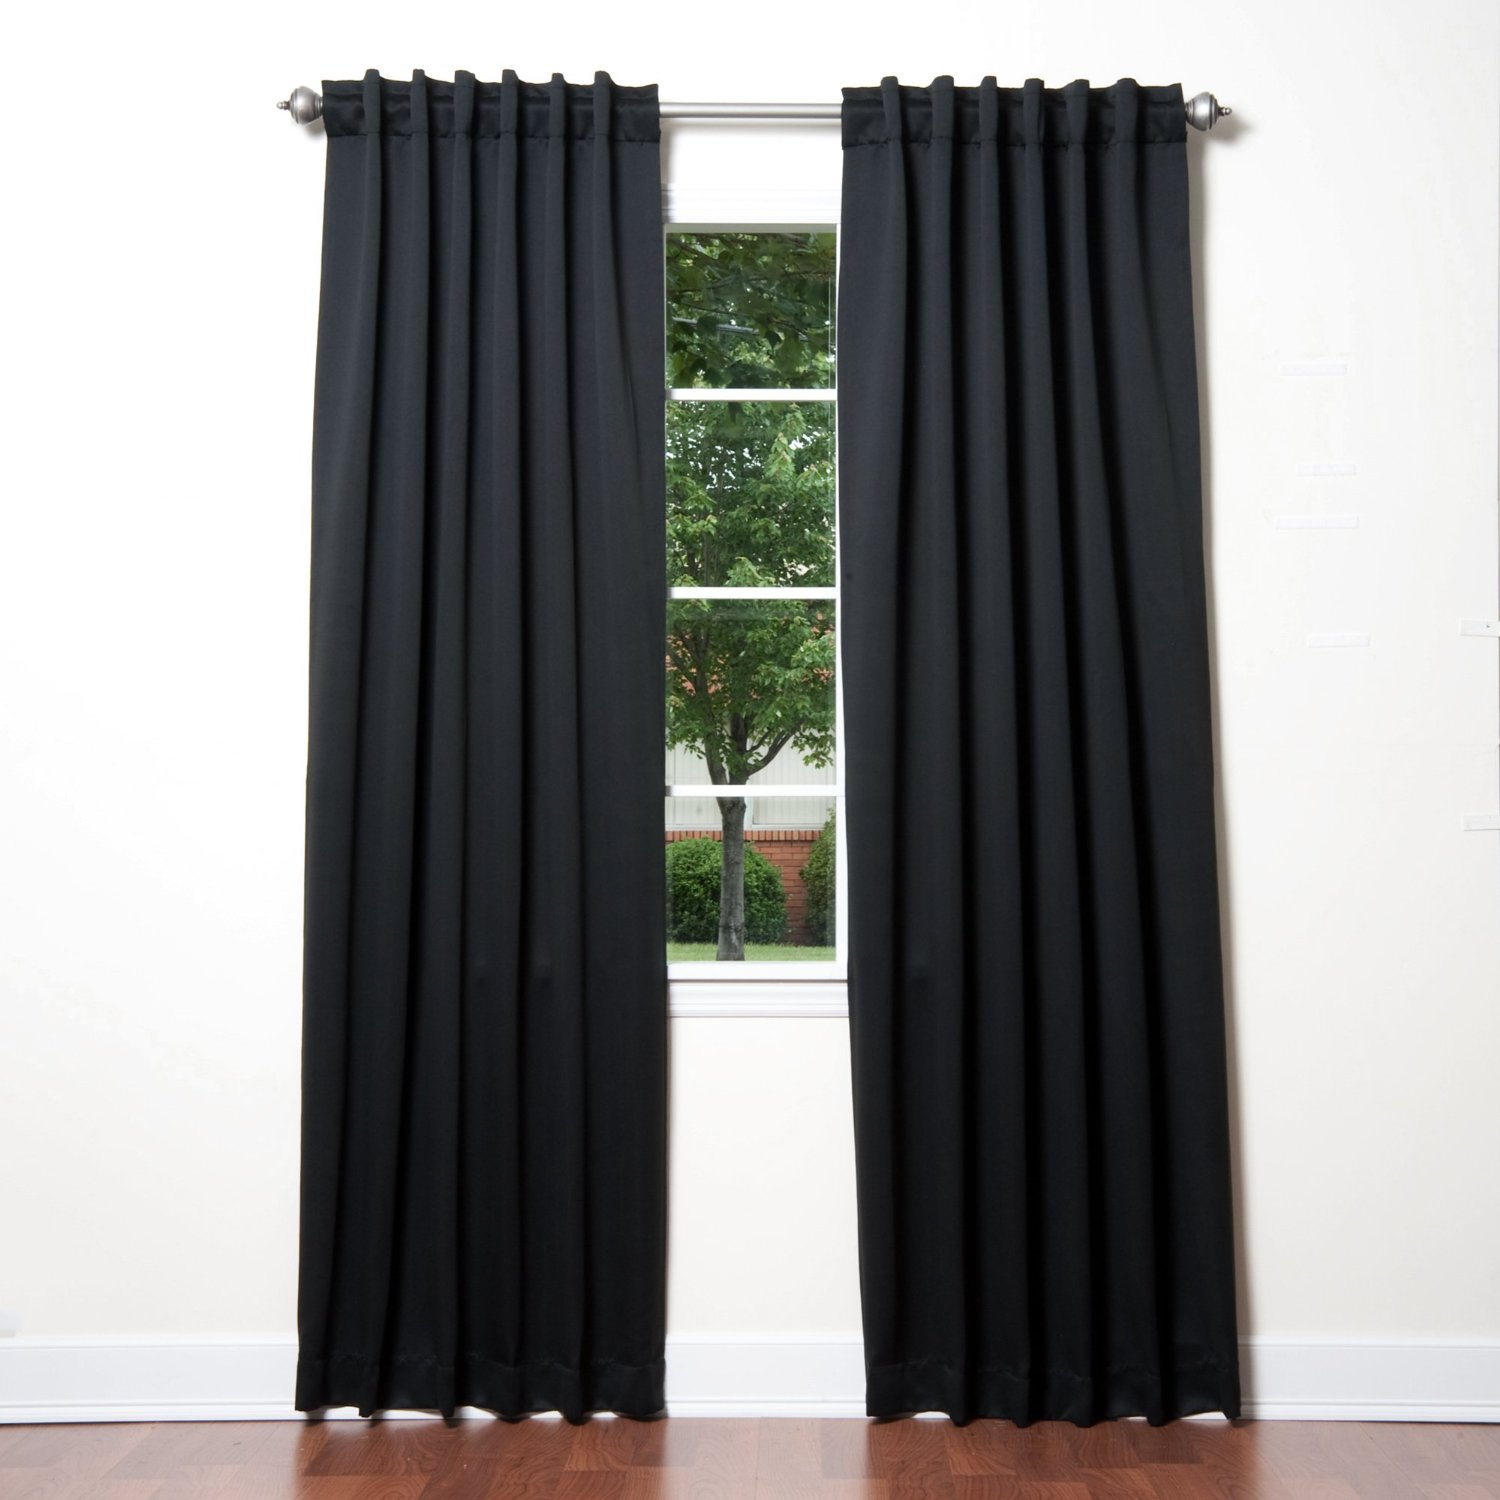 Best thermal blackout curtains amazon.com: best home fashion thermal insulated blackout curtains - back  tab/ rod yulvlcn